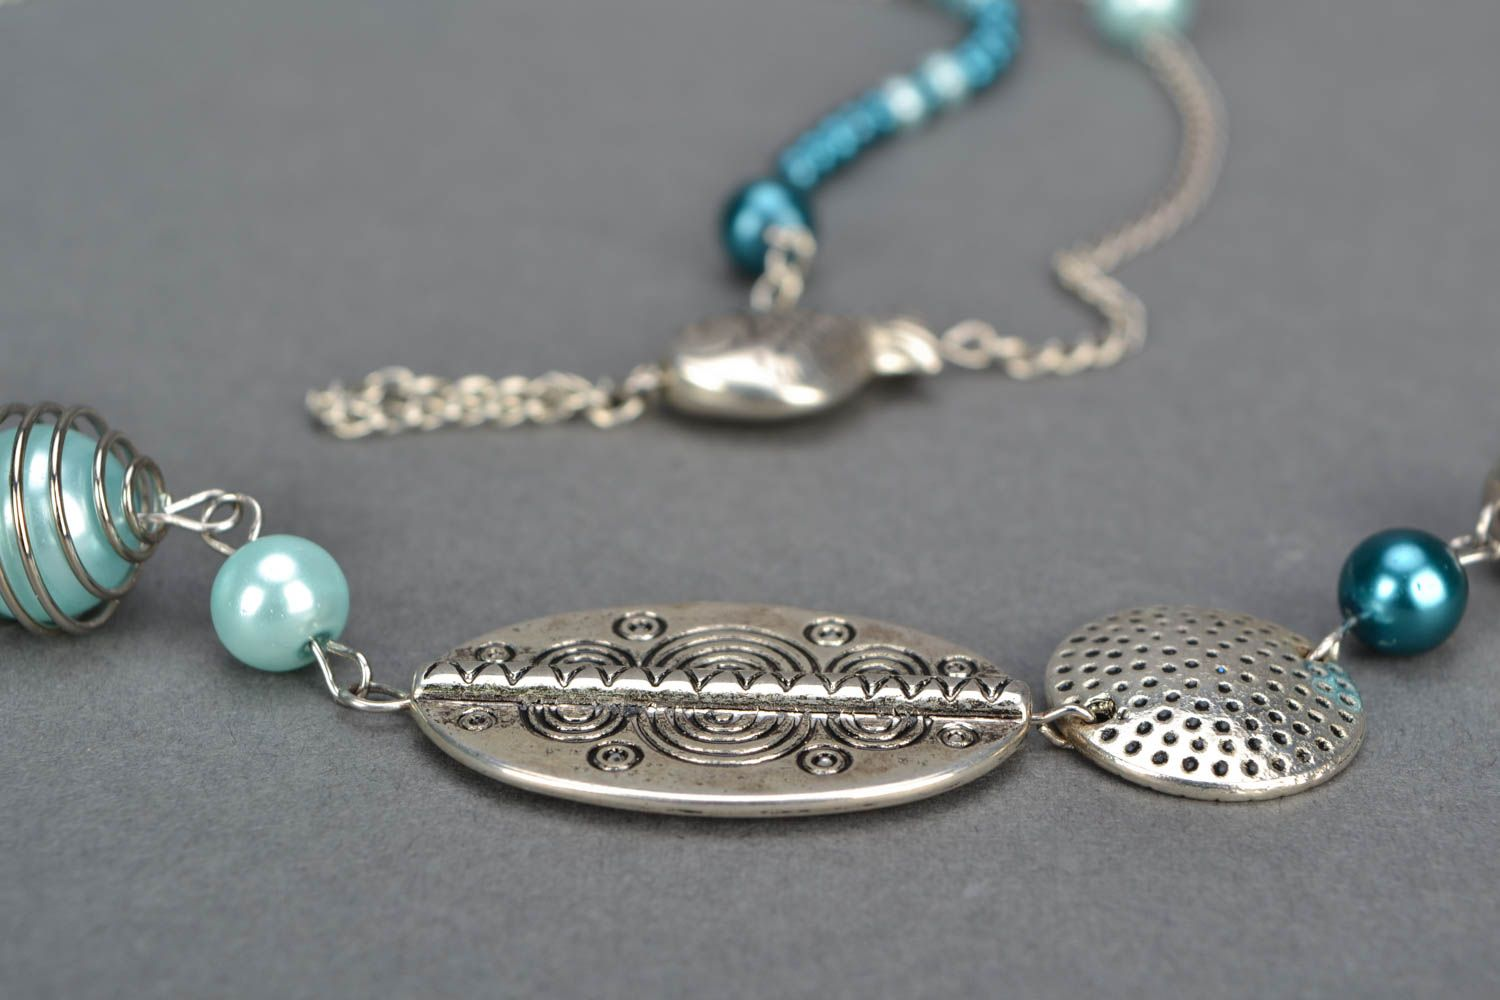 Necklace made of beads and metal photo 4